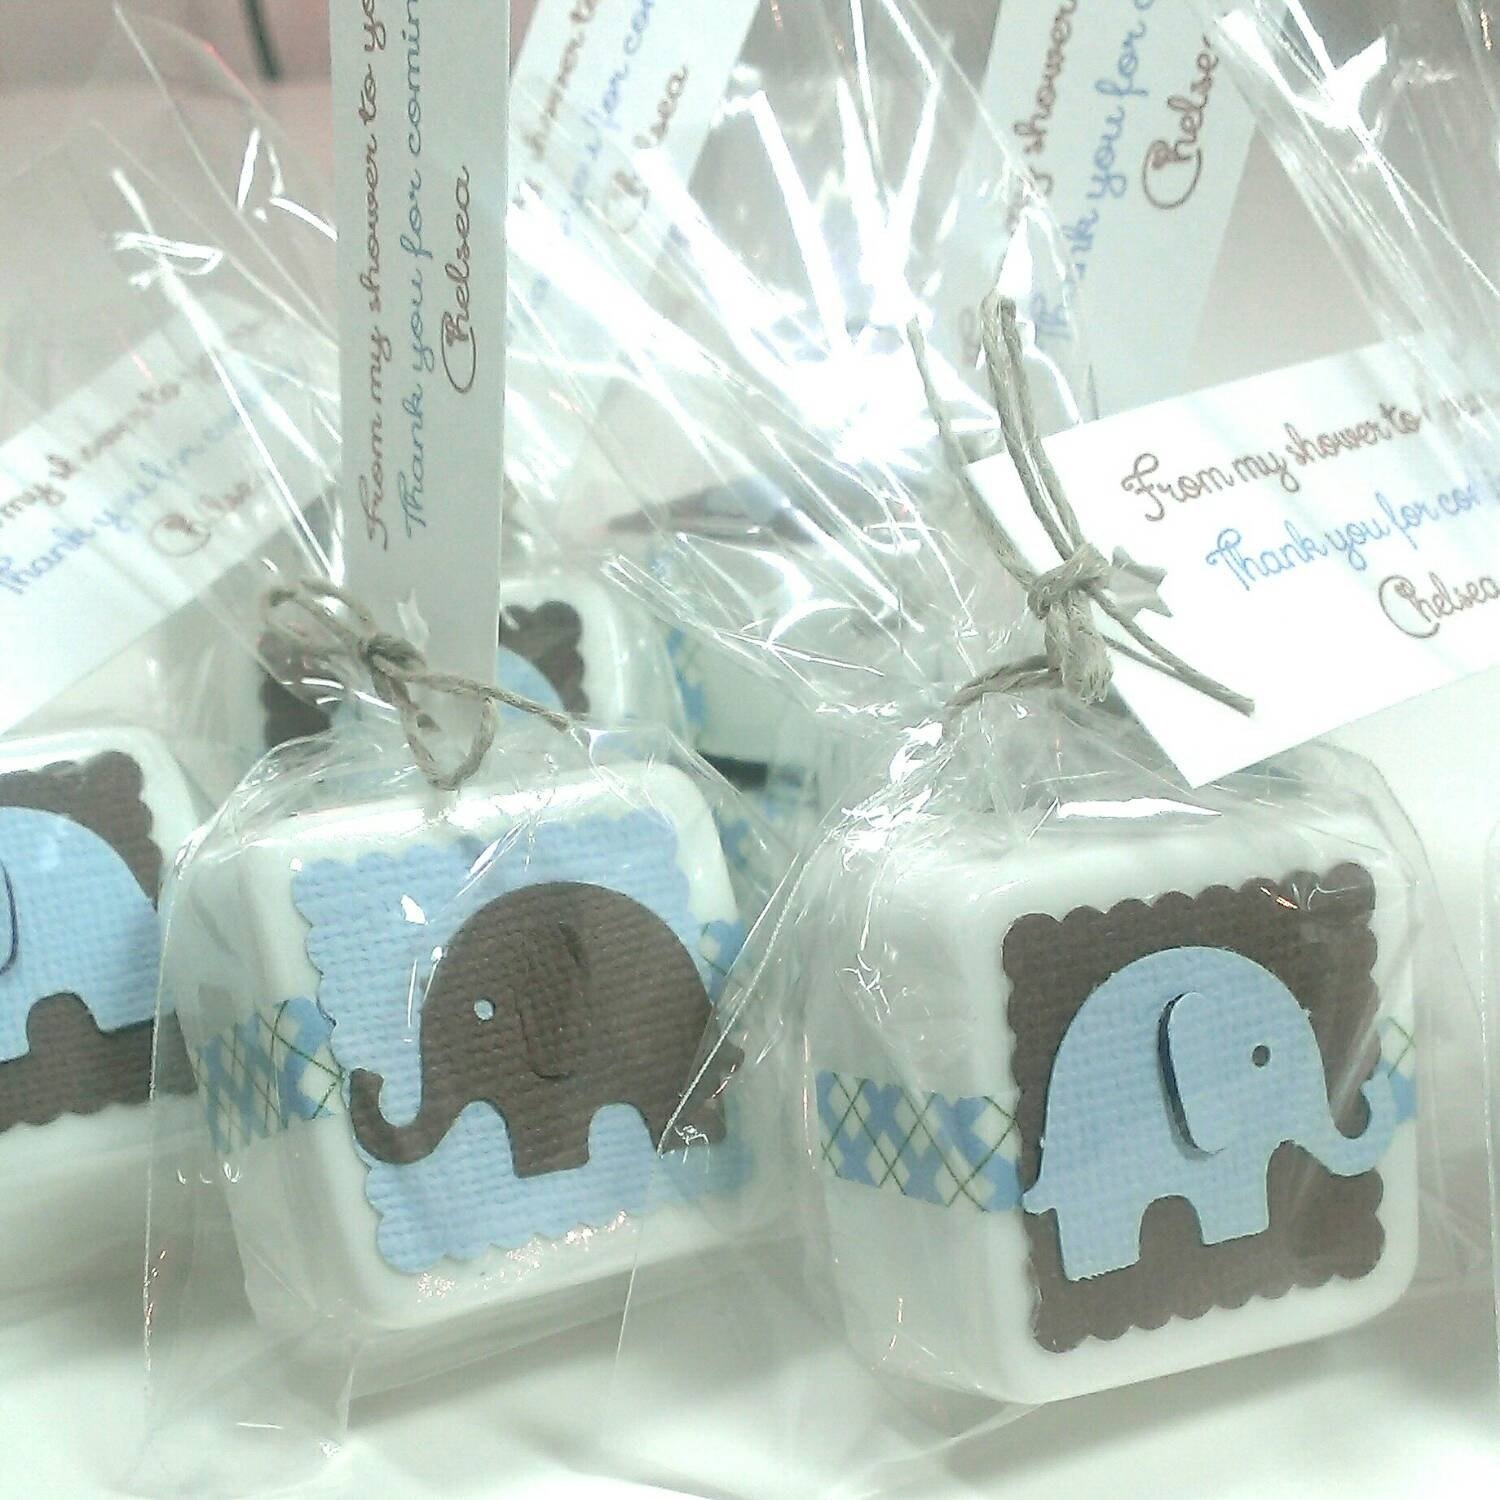 10 Perfect Baby Shower Party Favor Ideas baby shower favor ideas baby ideas 3 2020